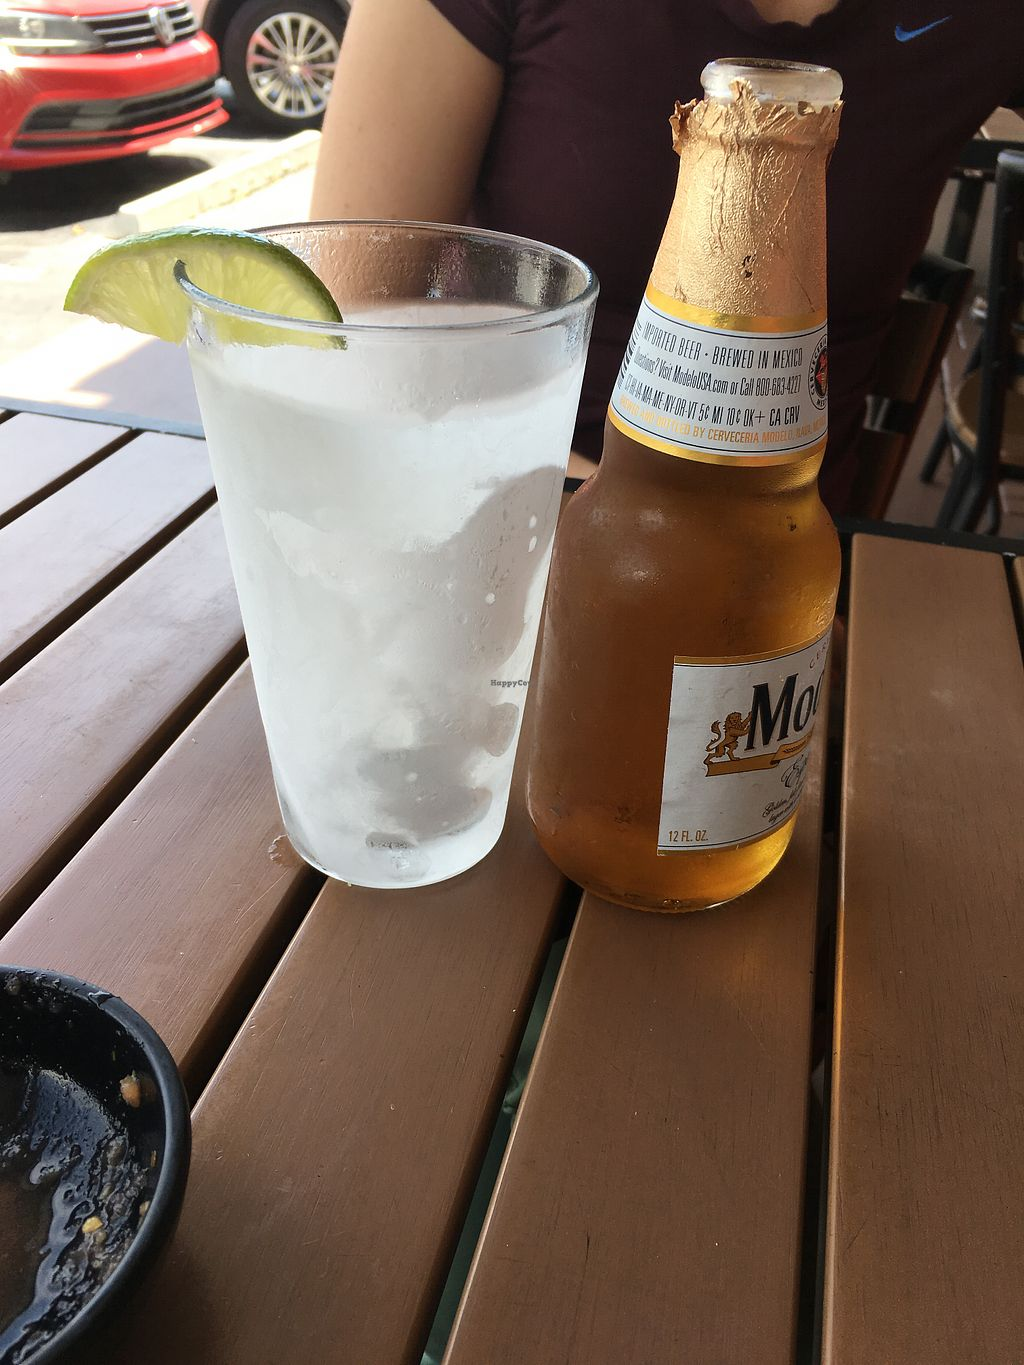 """Photo of Tequila Sunrise Mexican Grill  by <a href=""""/members/profile/giant%20bunnie"""" class=""""title__title"""">giant bunnie</a> <br/>Frozen mugs for beers  <br/> June 24, 2018  - <a href='/contact/abuse/image/40767/419233'>Report</a>"""